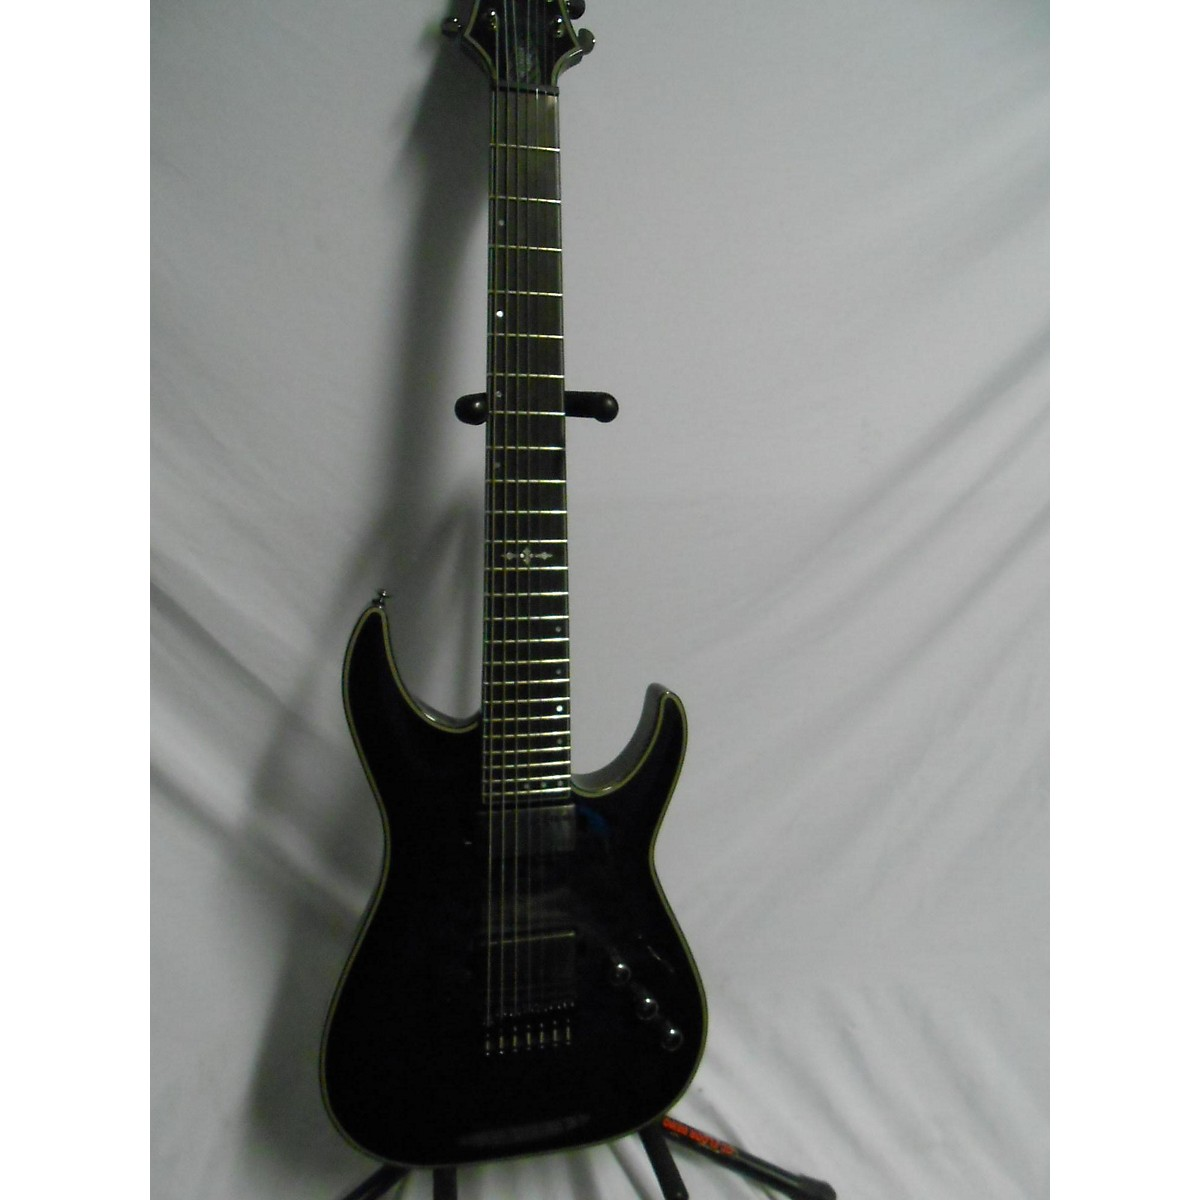 Schecter Guitar Research Hellraiser C7 Hybrid Solid Body Electric Guitar